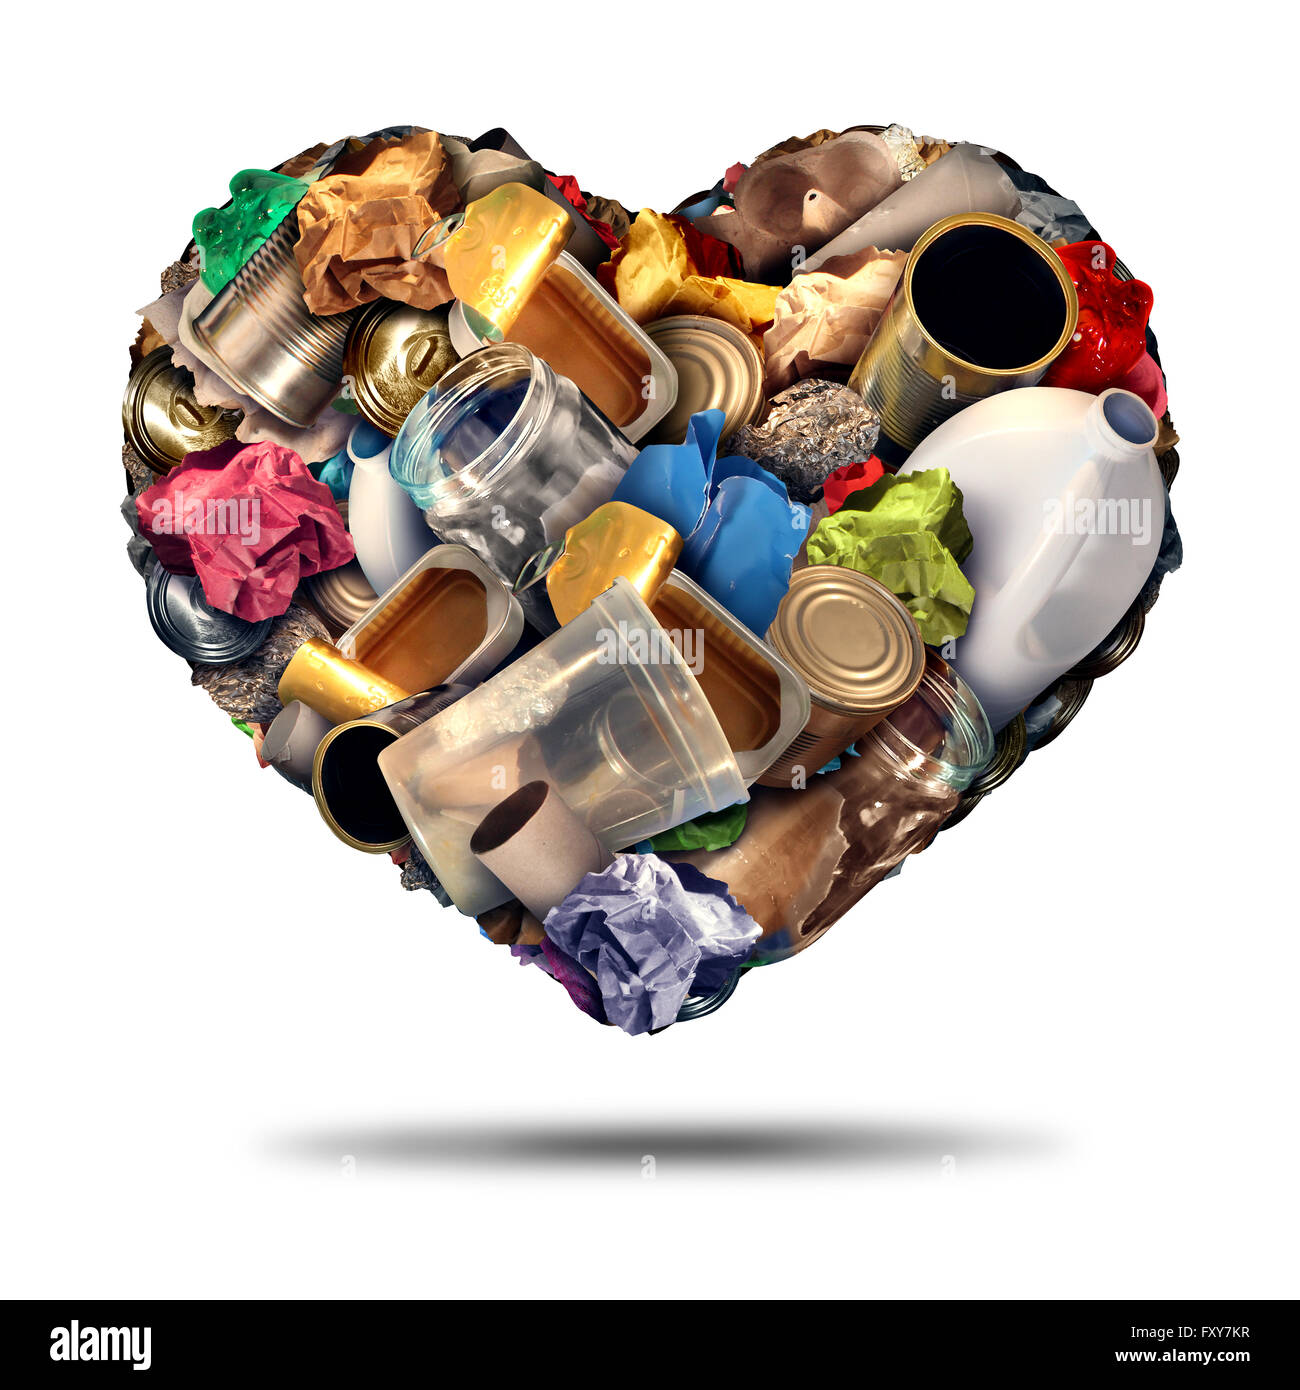 Recycle heart recycling symbol and reuse of scrap metal plastic recycle heart recycling symbol and reuse of scrap metal plastic and paper concept as an illustration on a white background as an icon for the love of biocorpaavc Gallery